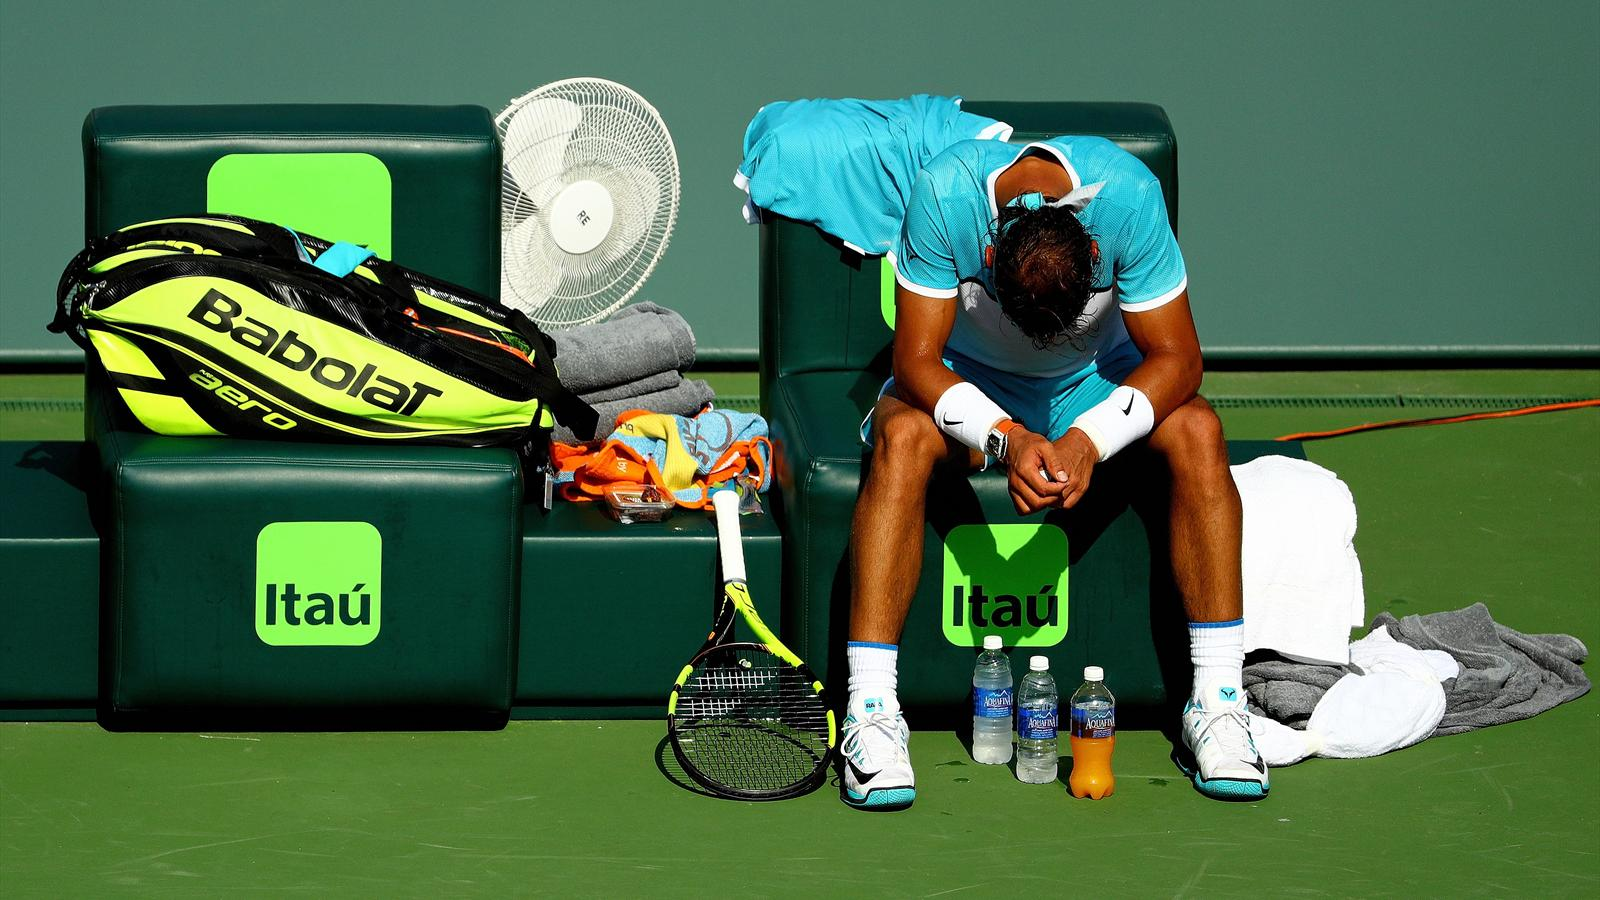 Rafael Nadal Retires From Match For First Time In Six Years In Miami Eurosport